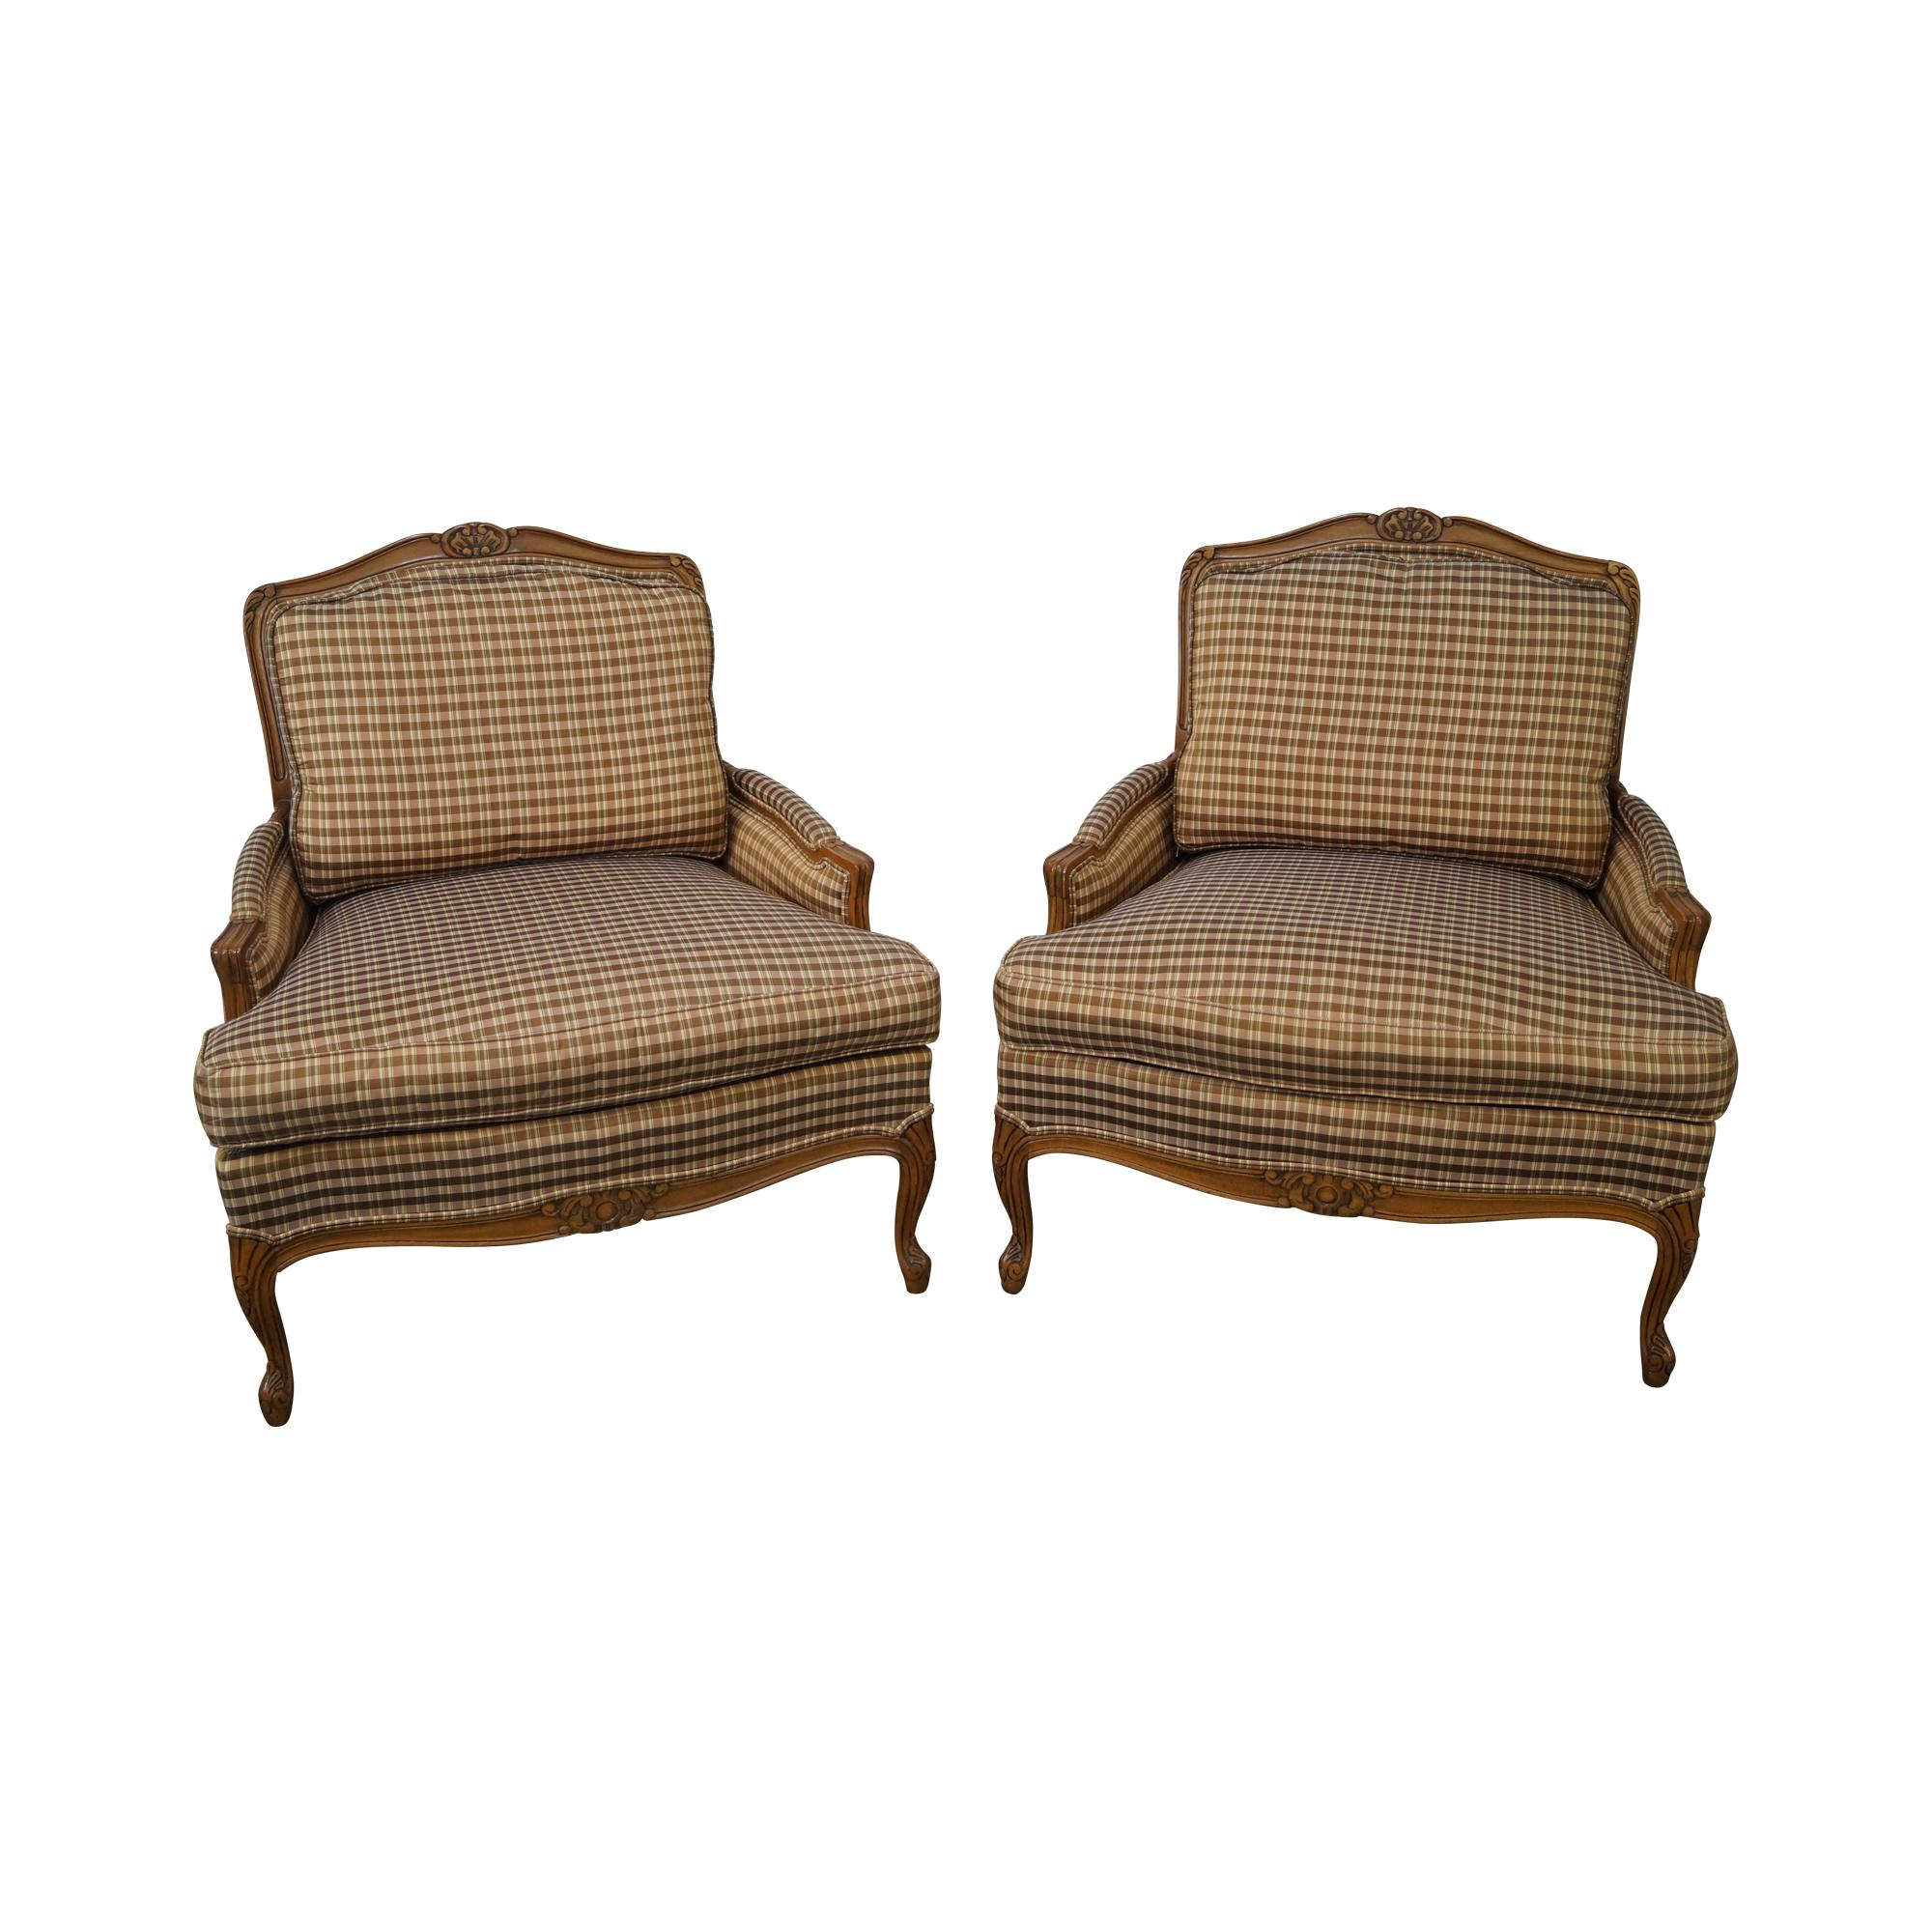 Taylor King French Louis XV Bergere Chairs A Pair Chairish : taylor king french louis xv bergere chairs a pair 1032aspectfitampwidth640ampheight640 from www.chairish.com size 640 x 640 jpeg 38kB